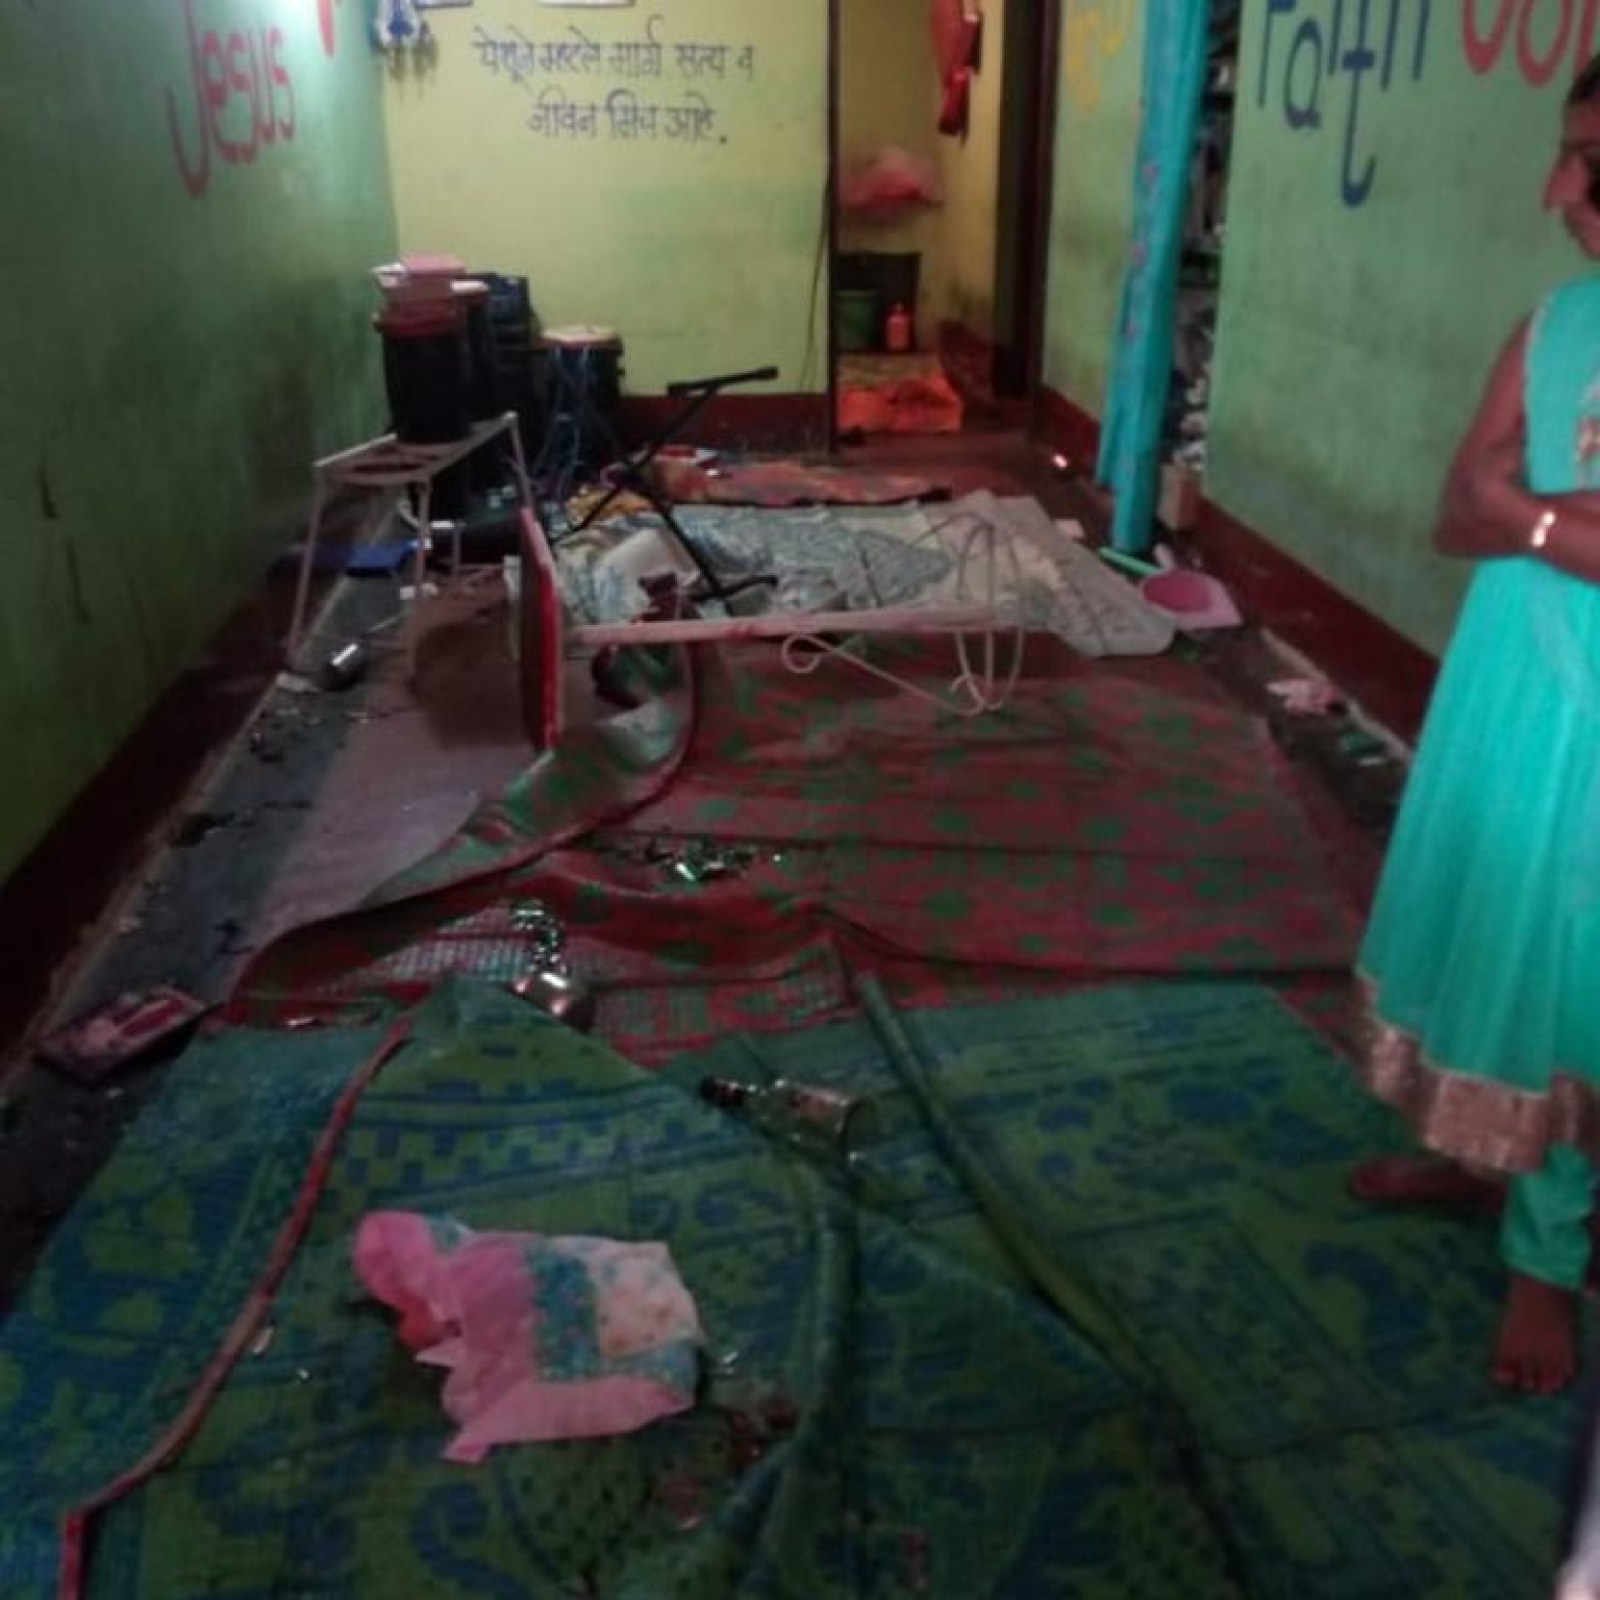 How Hindu Extremists Are Shutting Down Christian Churches: 'Why Are